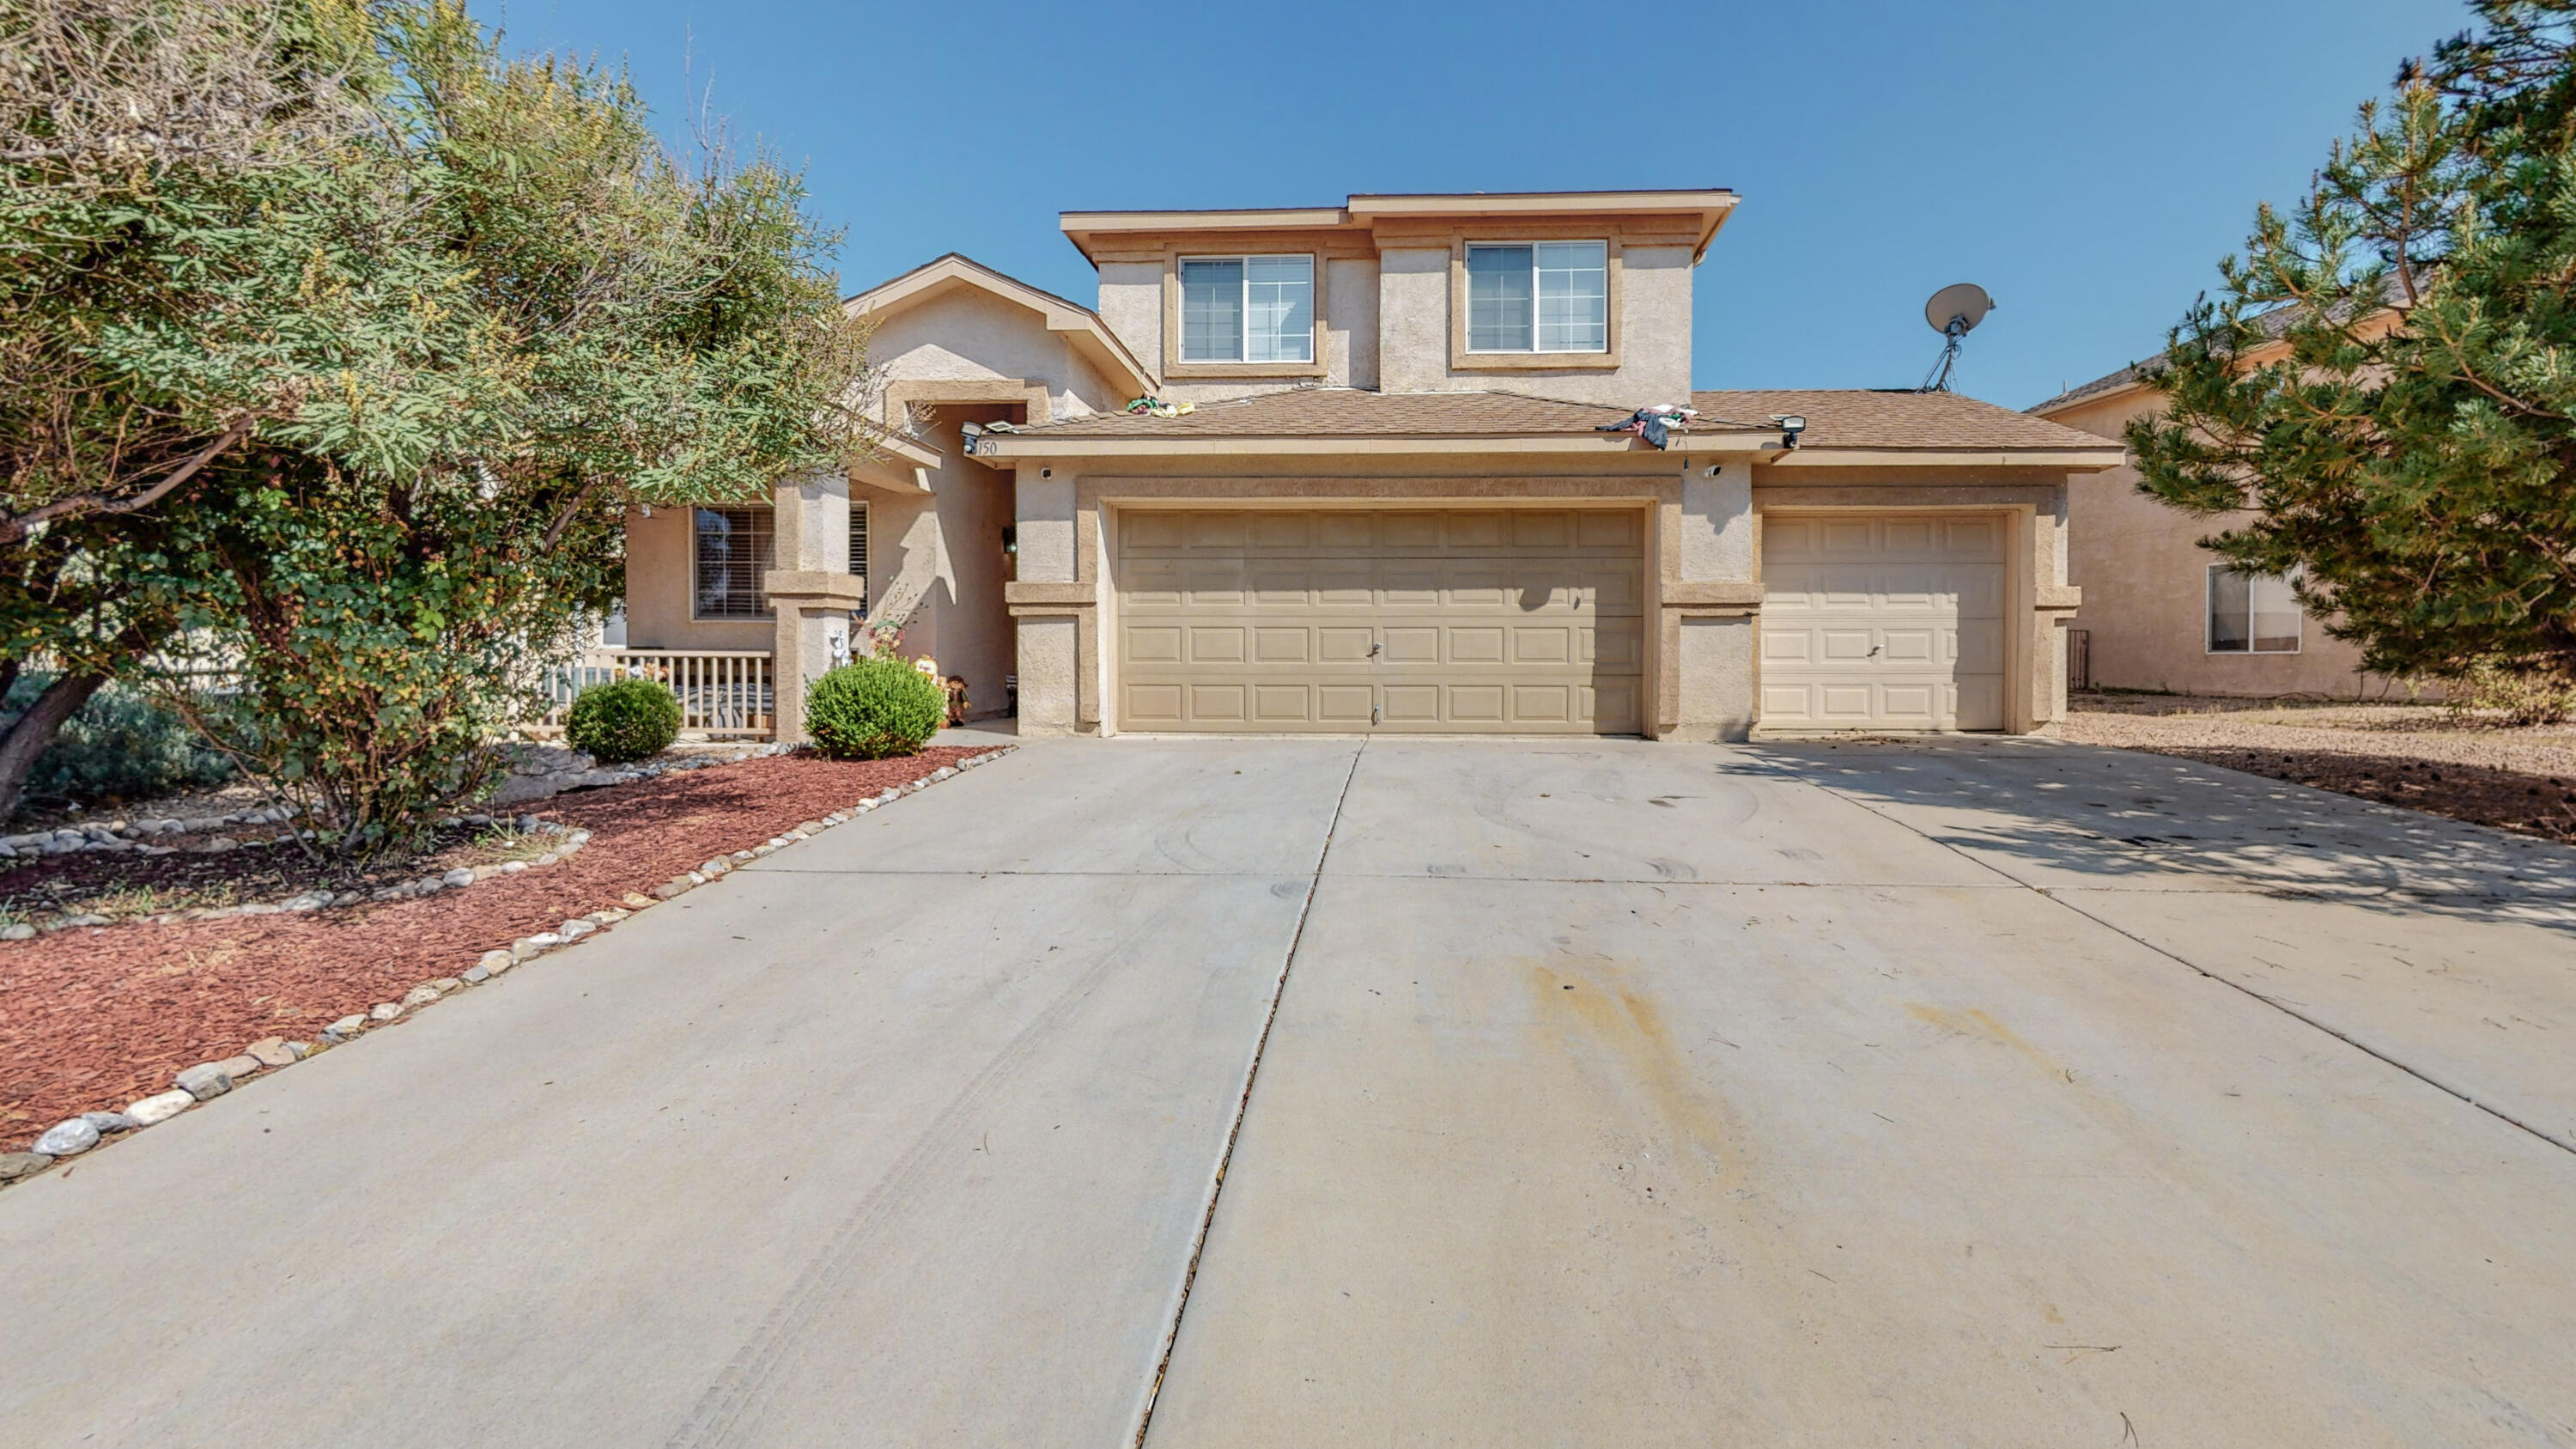 Beautiful 3 bedroom 2 bathroom, 3 car garage! loft area can be turned into a 4th bedroom.  well maintained close to i25 and shopping. schedule your tour today!